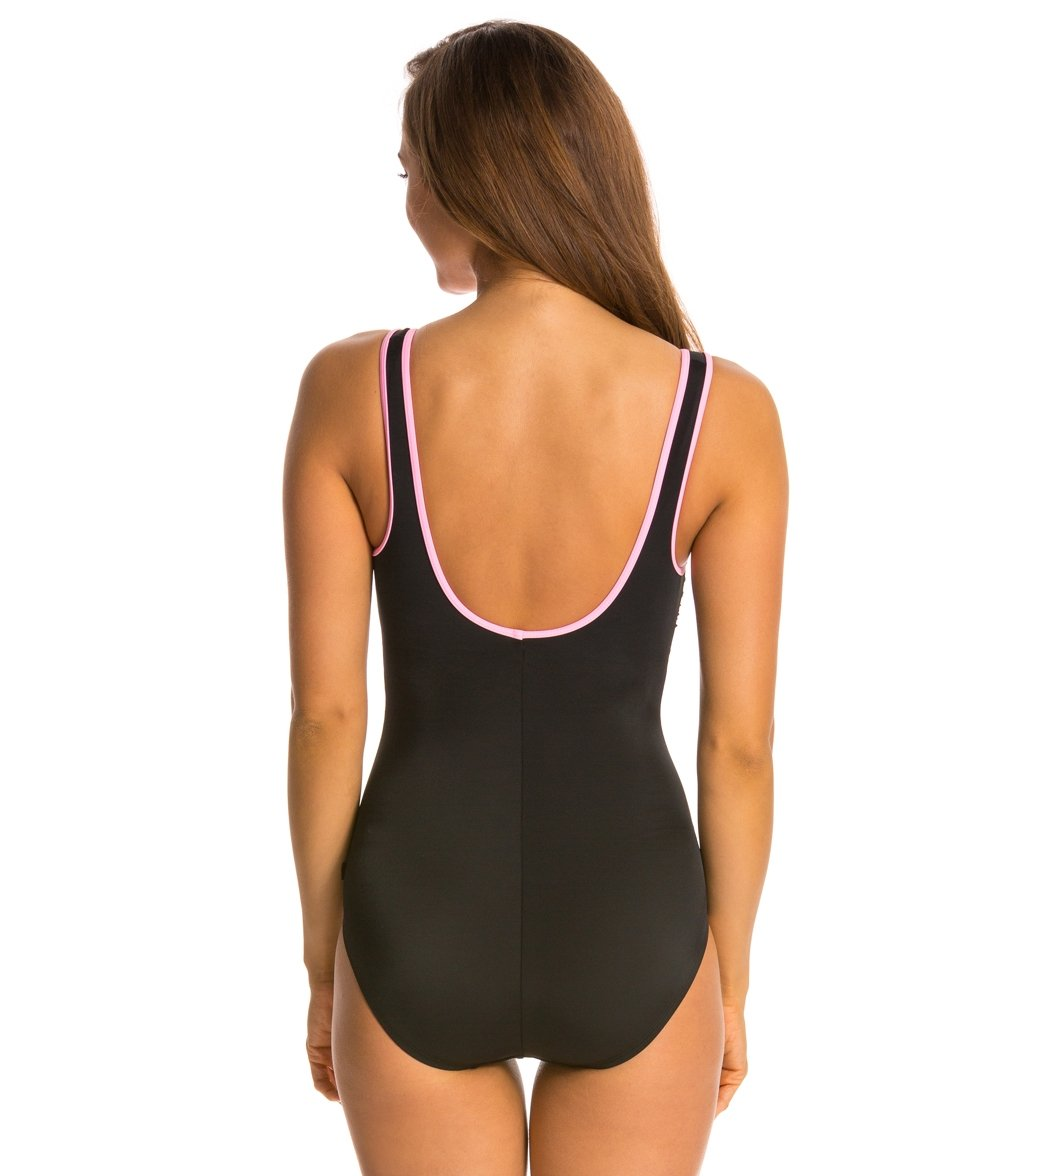 99a0691106784 Reebok Fitness Swim Zig Zag U-Back Tank Chlorine Resistant One Piece  Swimsuit